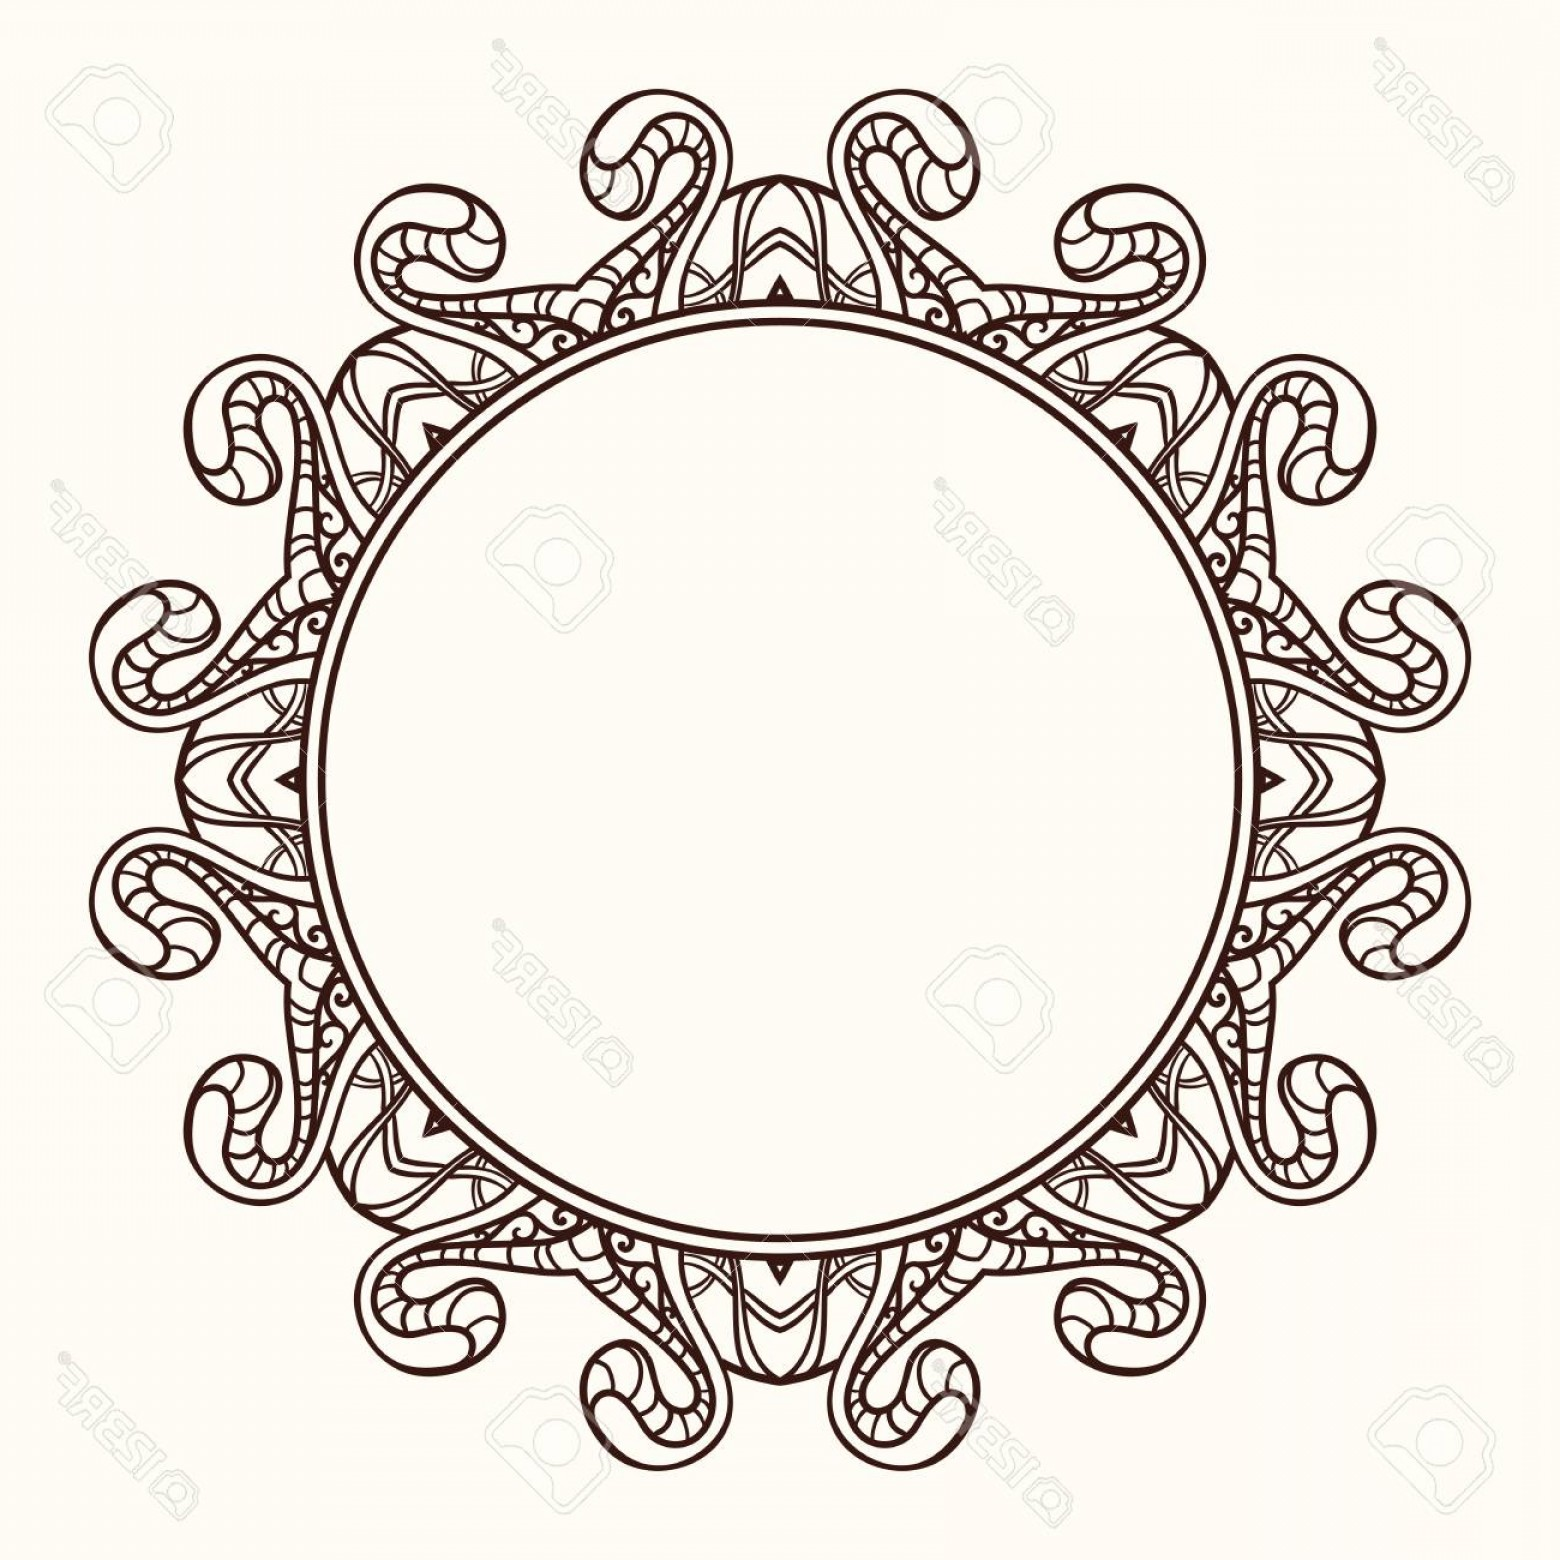 Vector Ornate Shaped Frame: Photostock Vector Vector Frame In Shape Of A Circle Ornate Element For Design Vintage Round Frame Vector Linear Orname